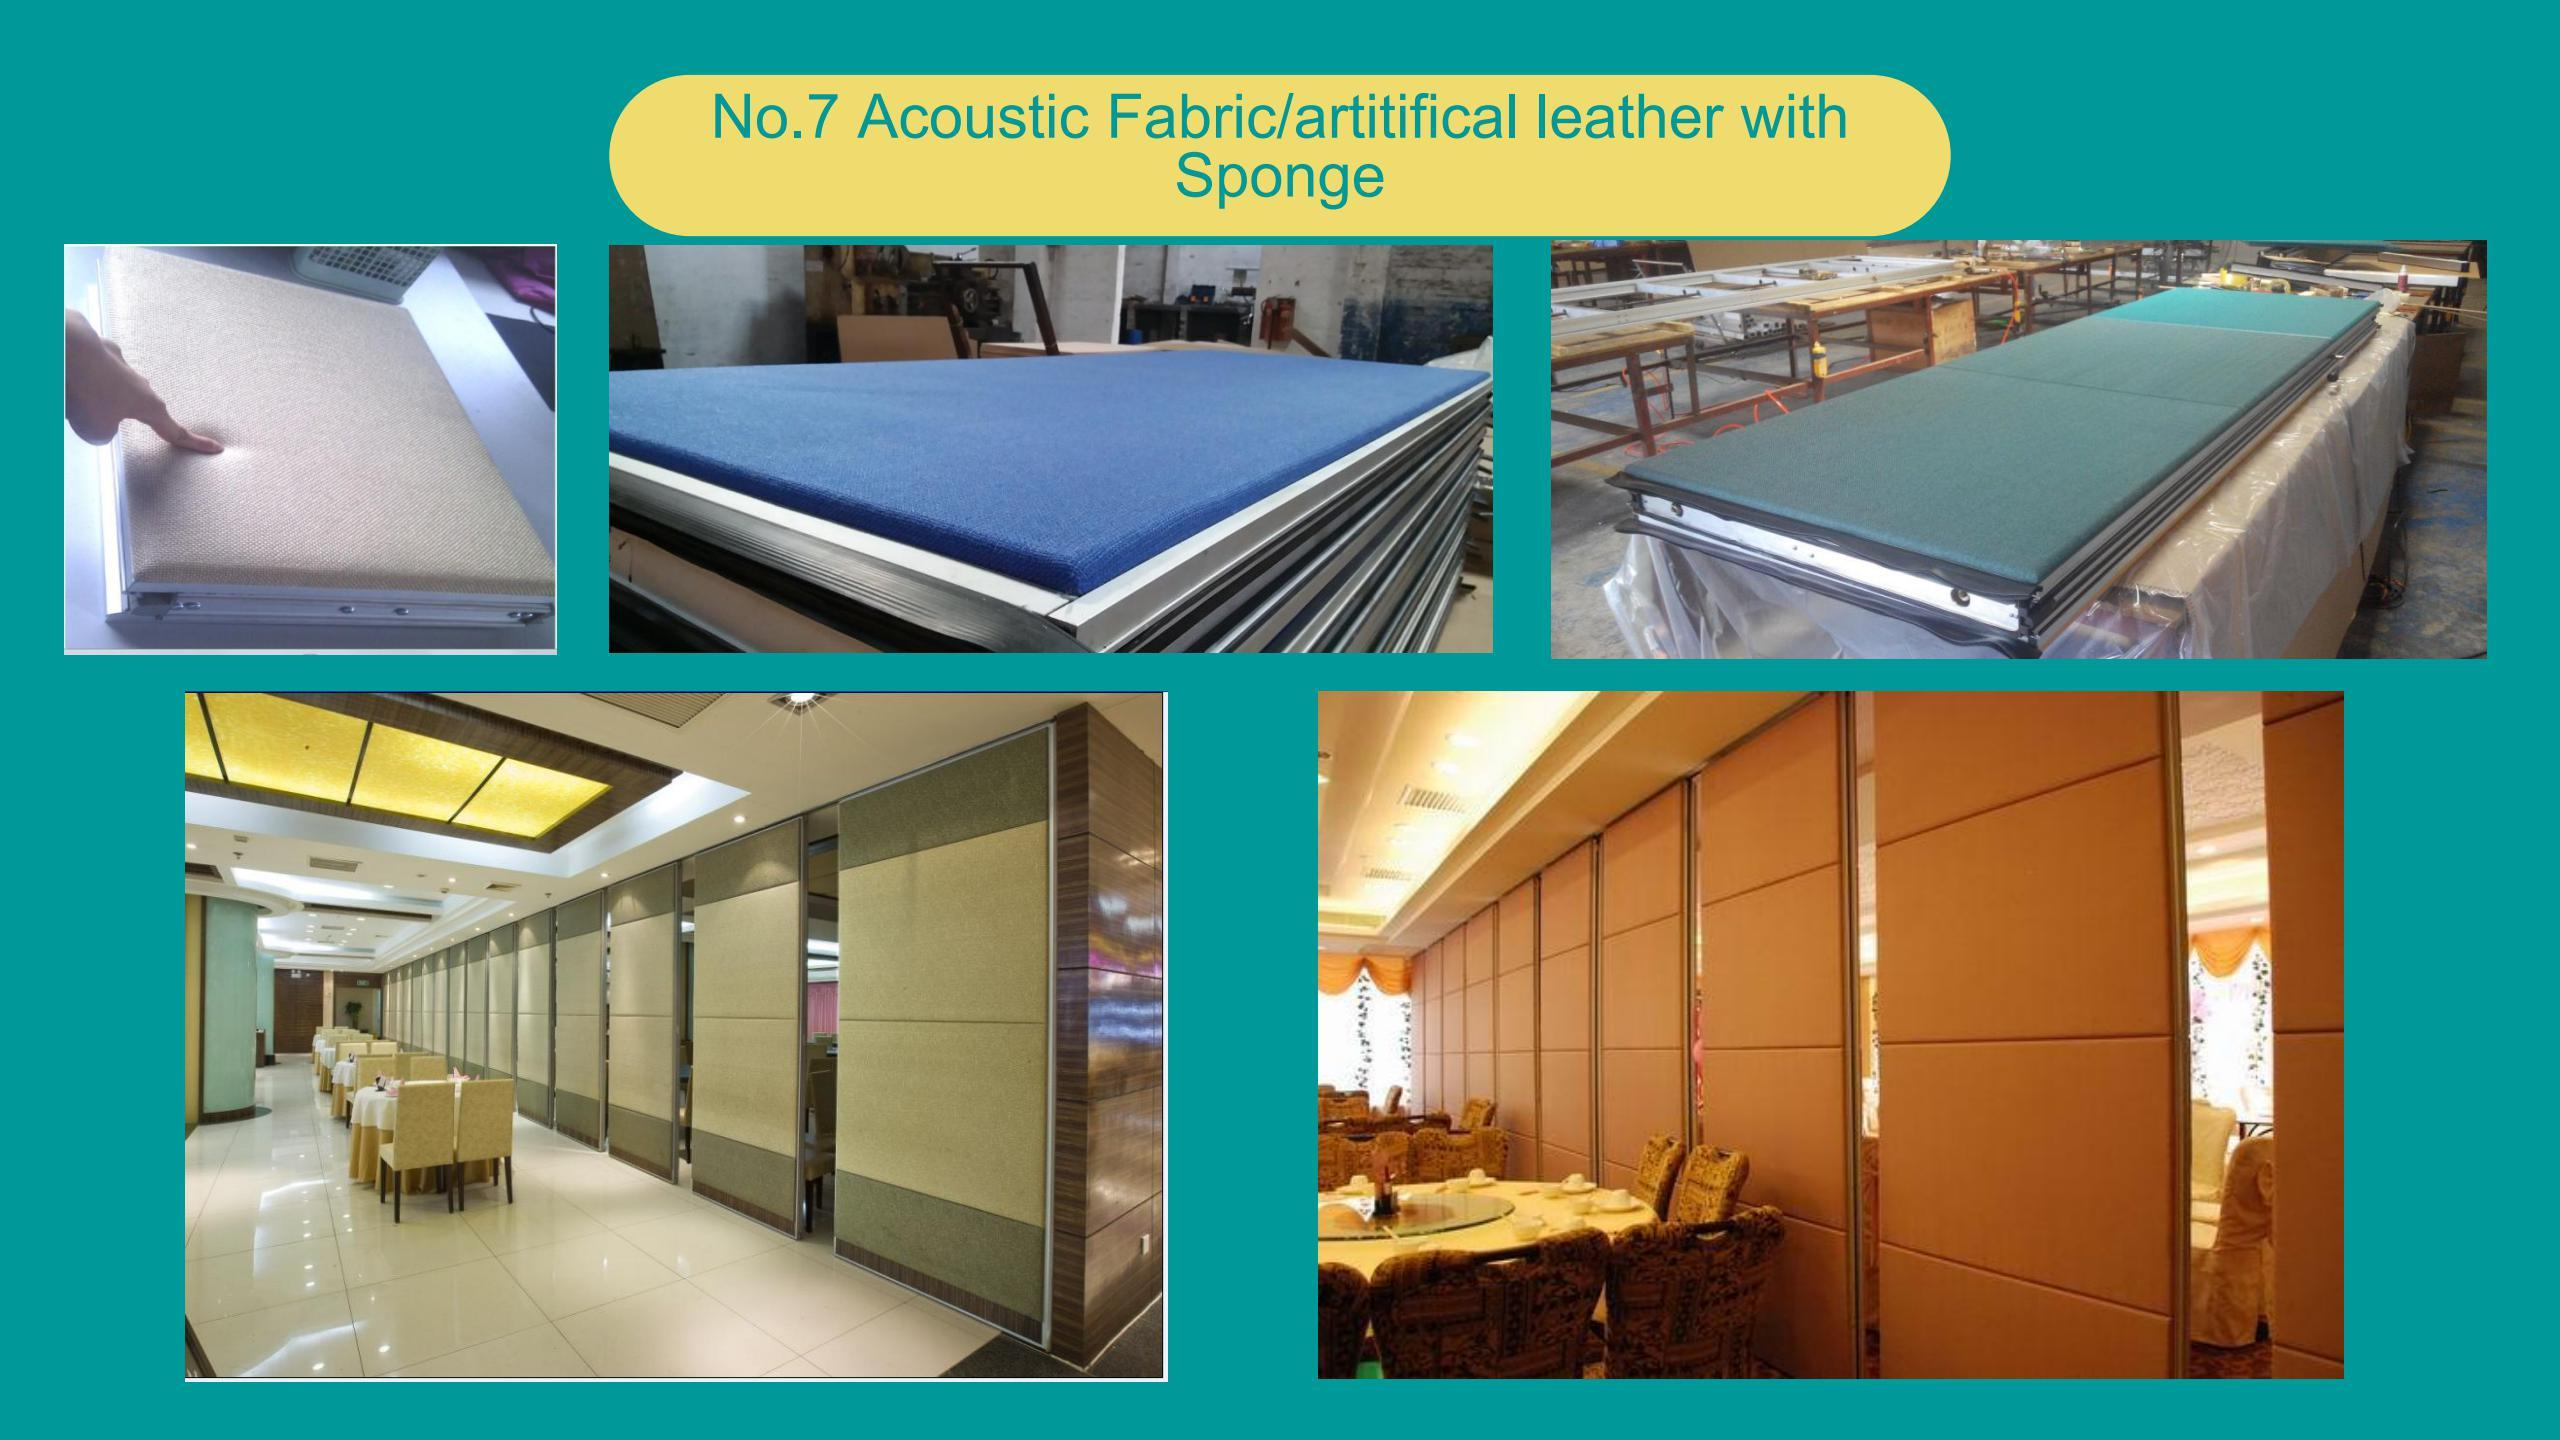 Acoustic Fabric/artitifical leather with Sponge